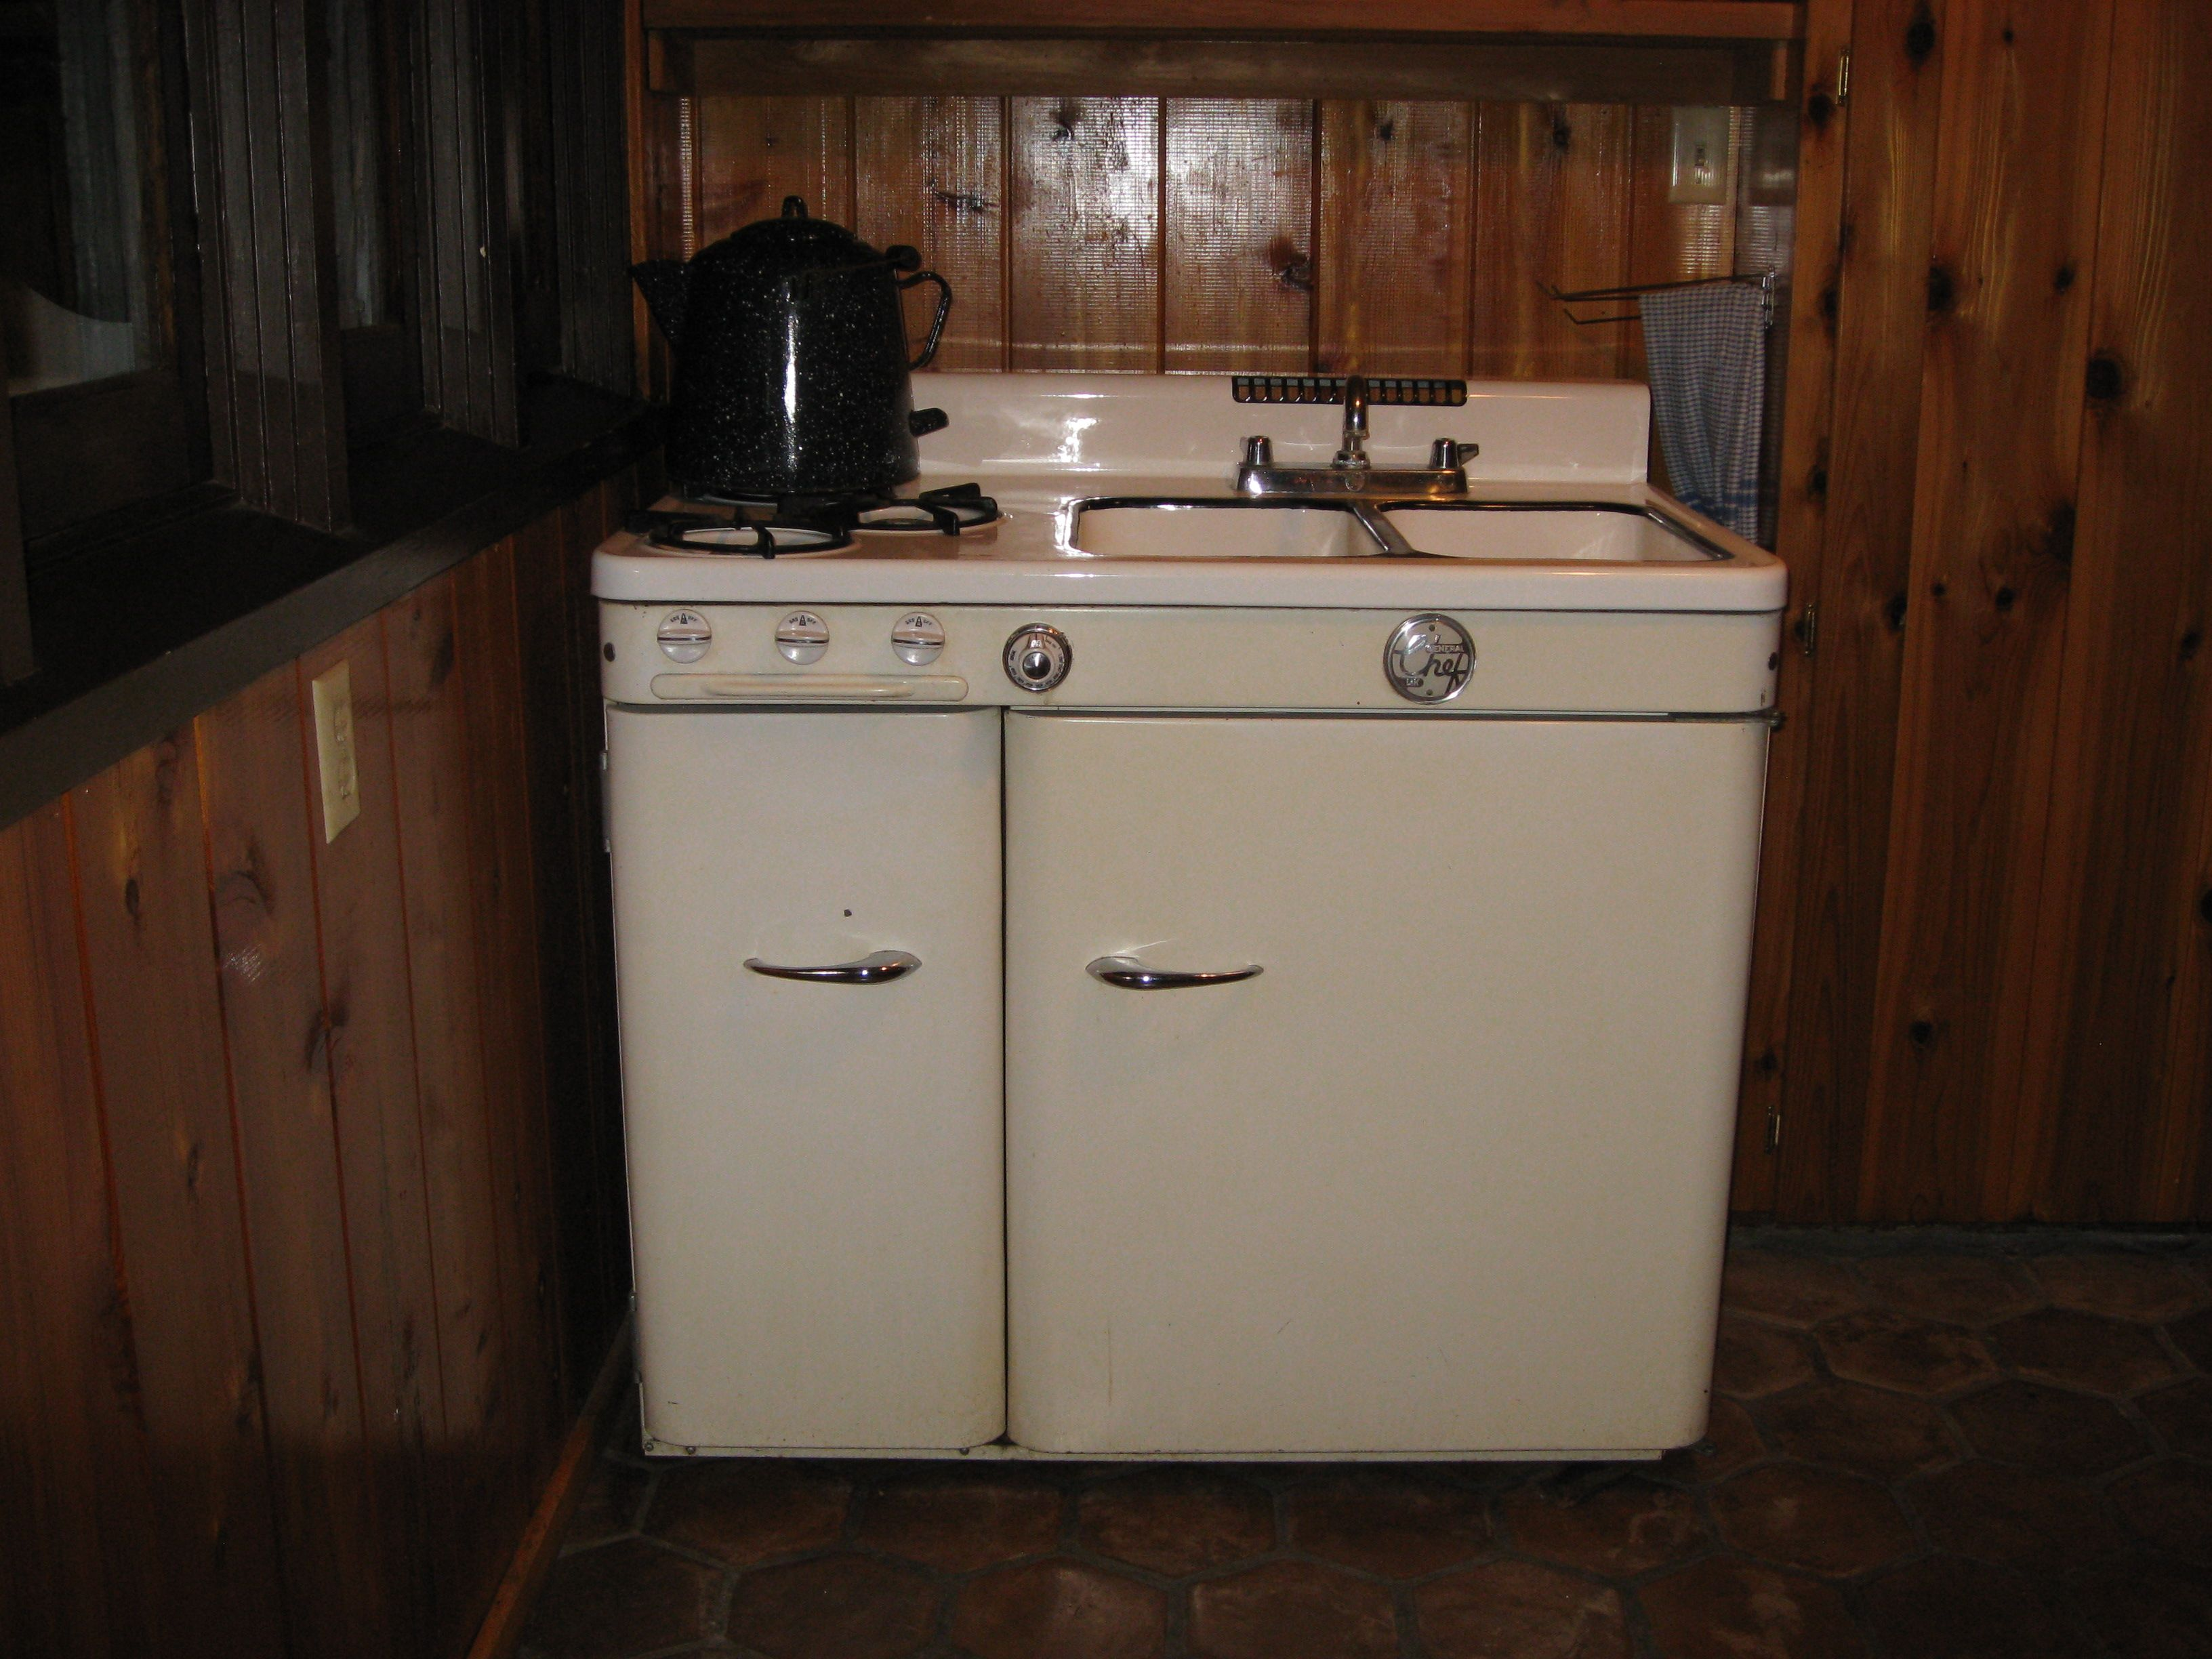 Antique Kitchen Appliances Home Dog Food Vintage Stove Sink Refrigerator Combo Stoves